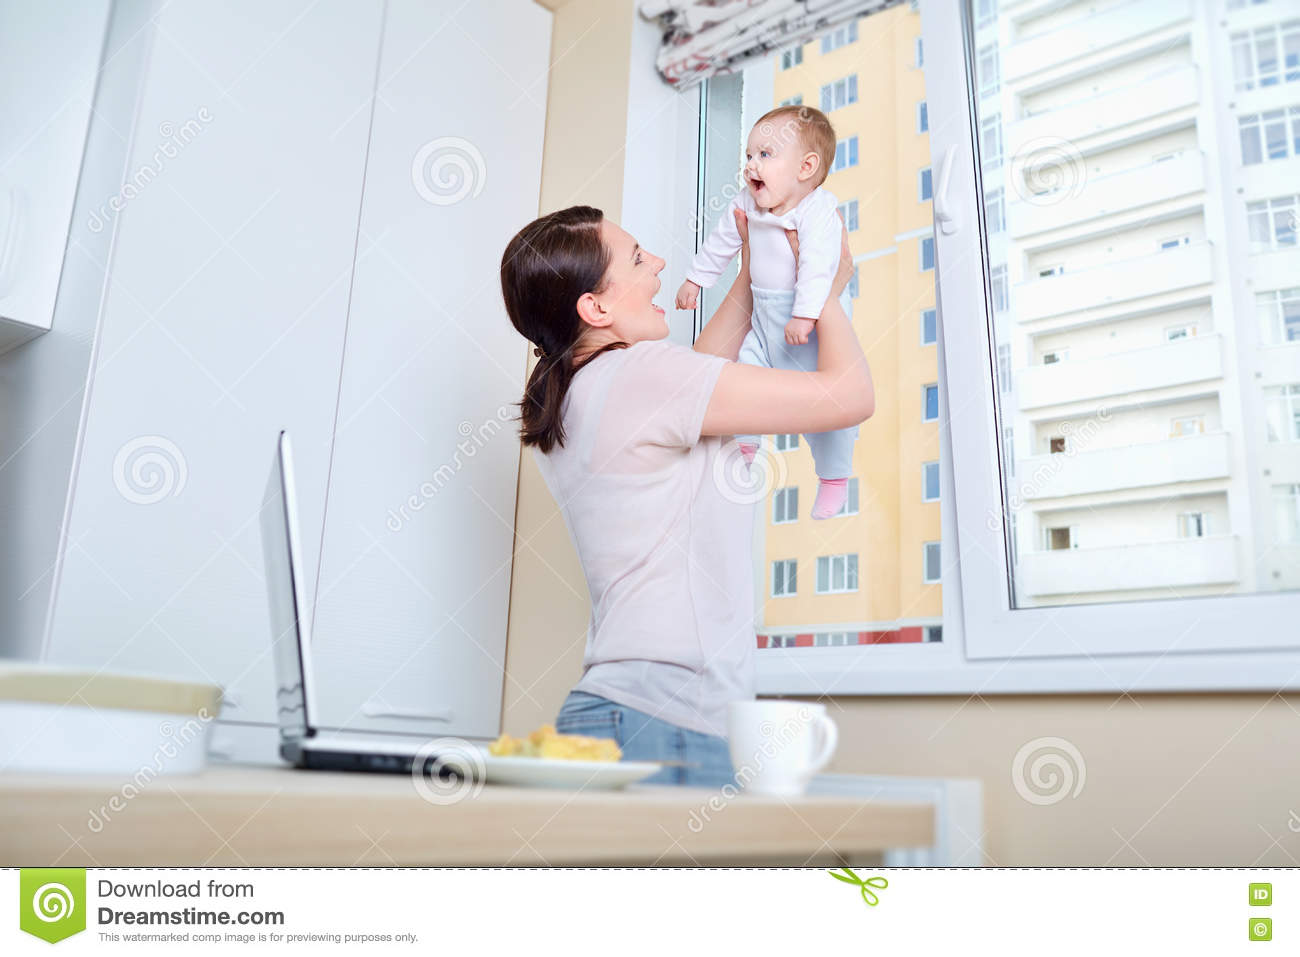 Mom Plays With The Child At The Window In The White Kitchen Stock ...